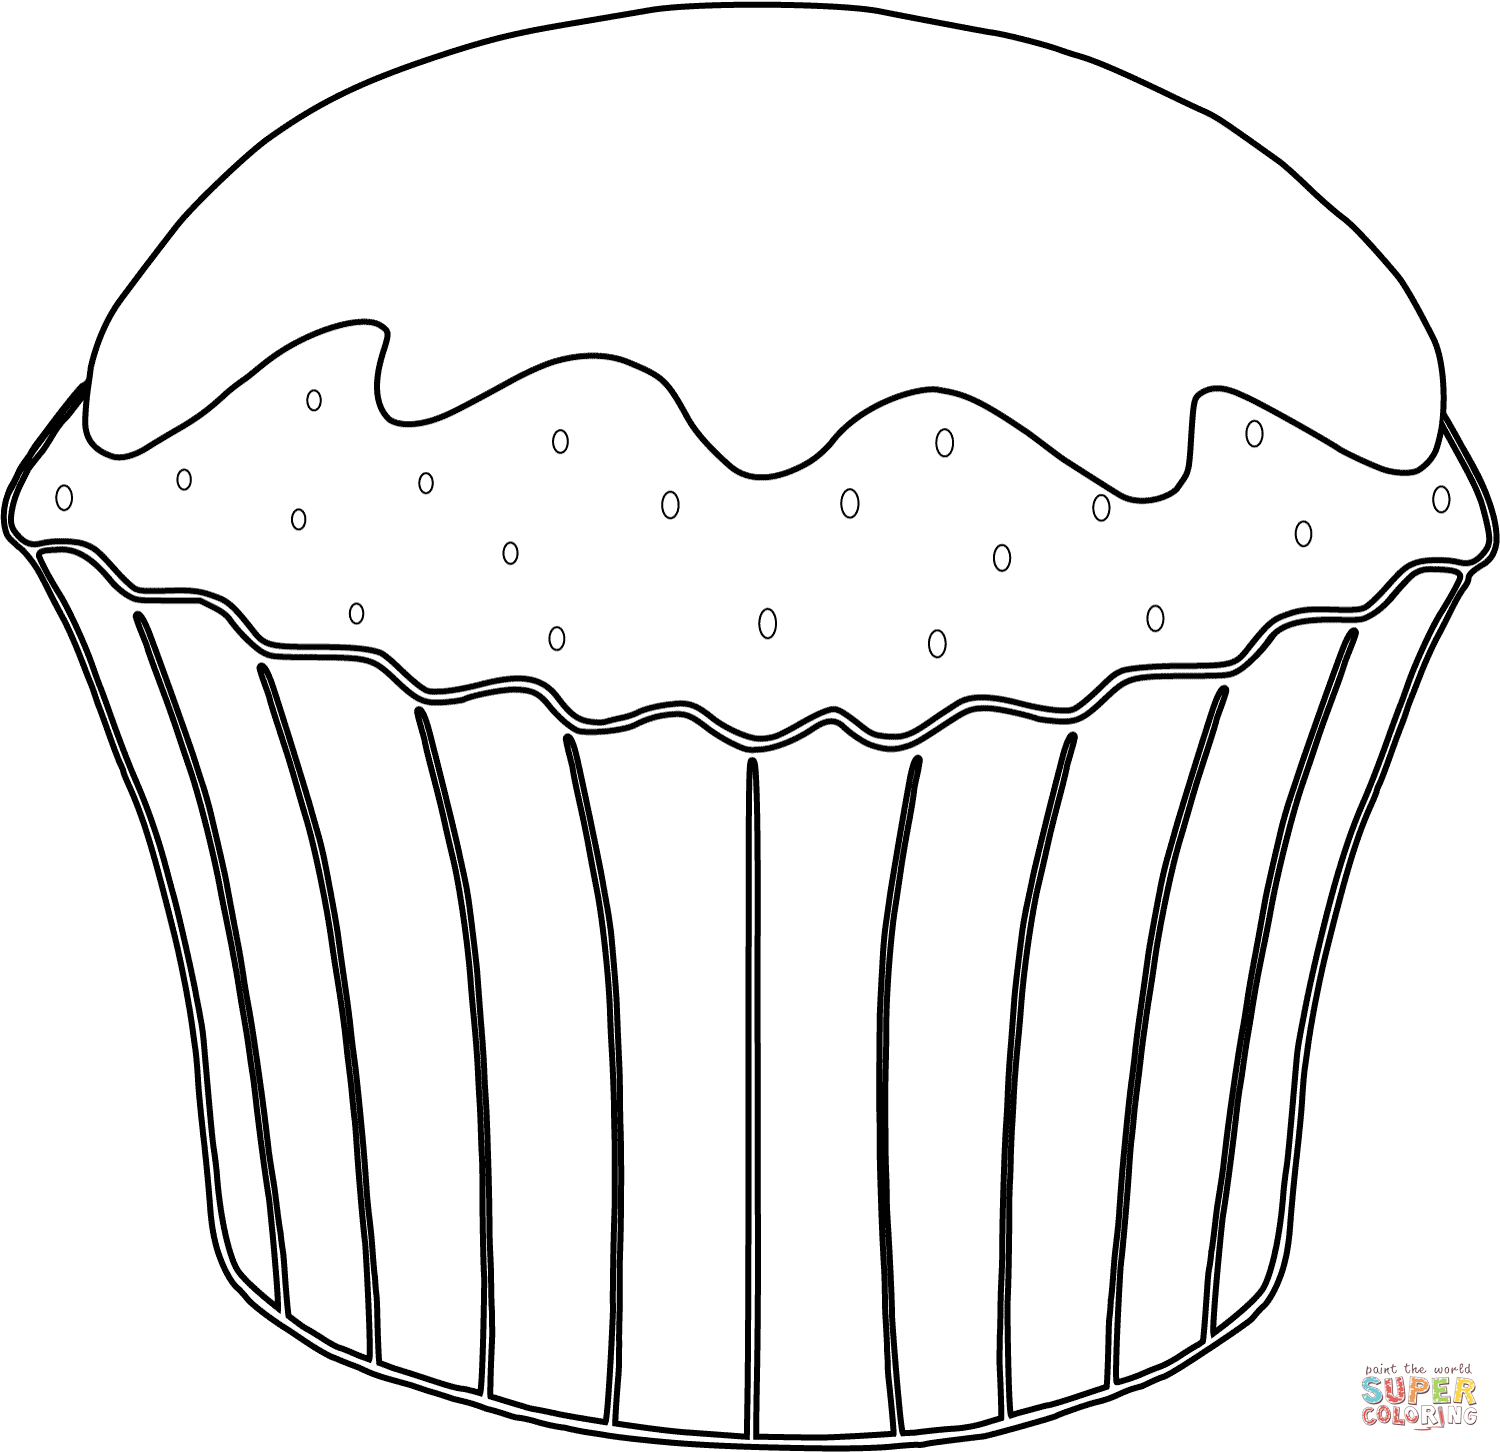 muffin pictures to color muffin coloring page at getcoloringscom free printable to pictures muffin color